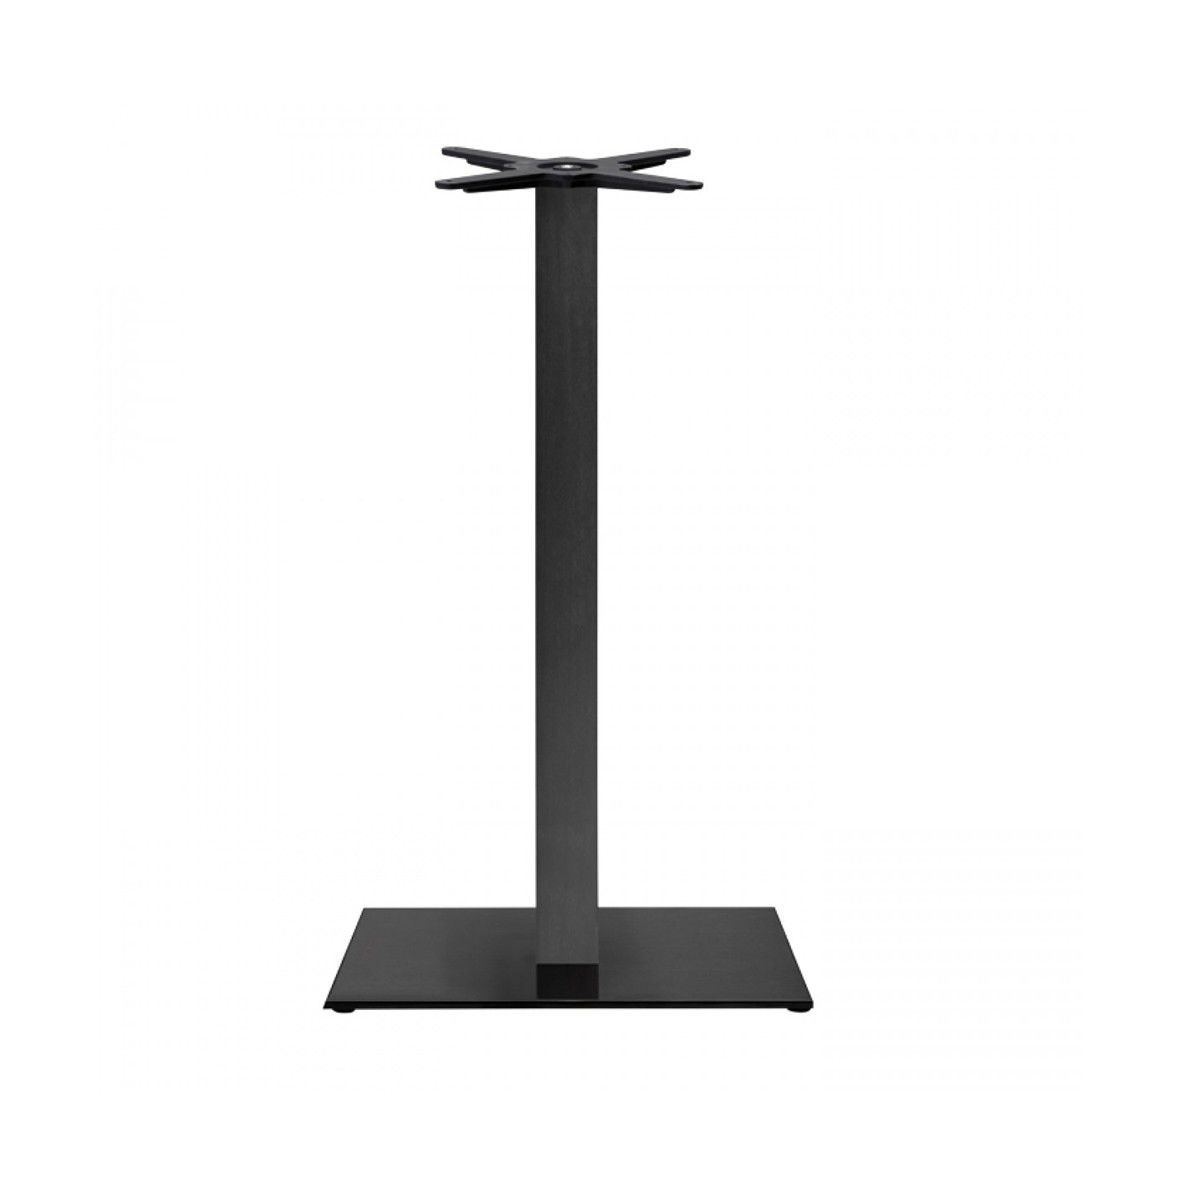 Cast Iron Table Base / Stainless Steel / Contemporary / For High Bar Tables    TIFFANY